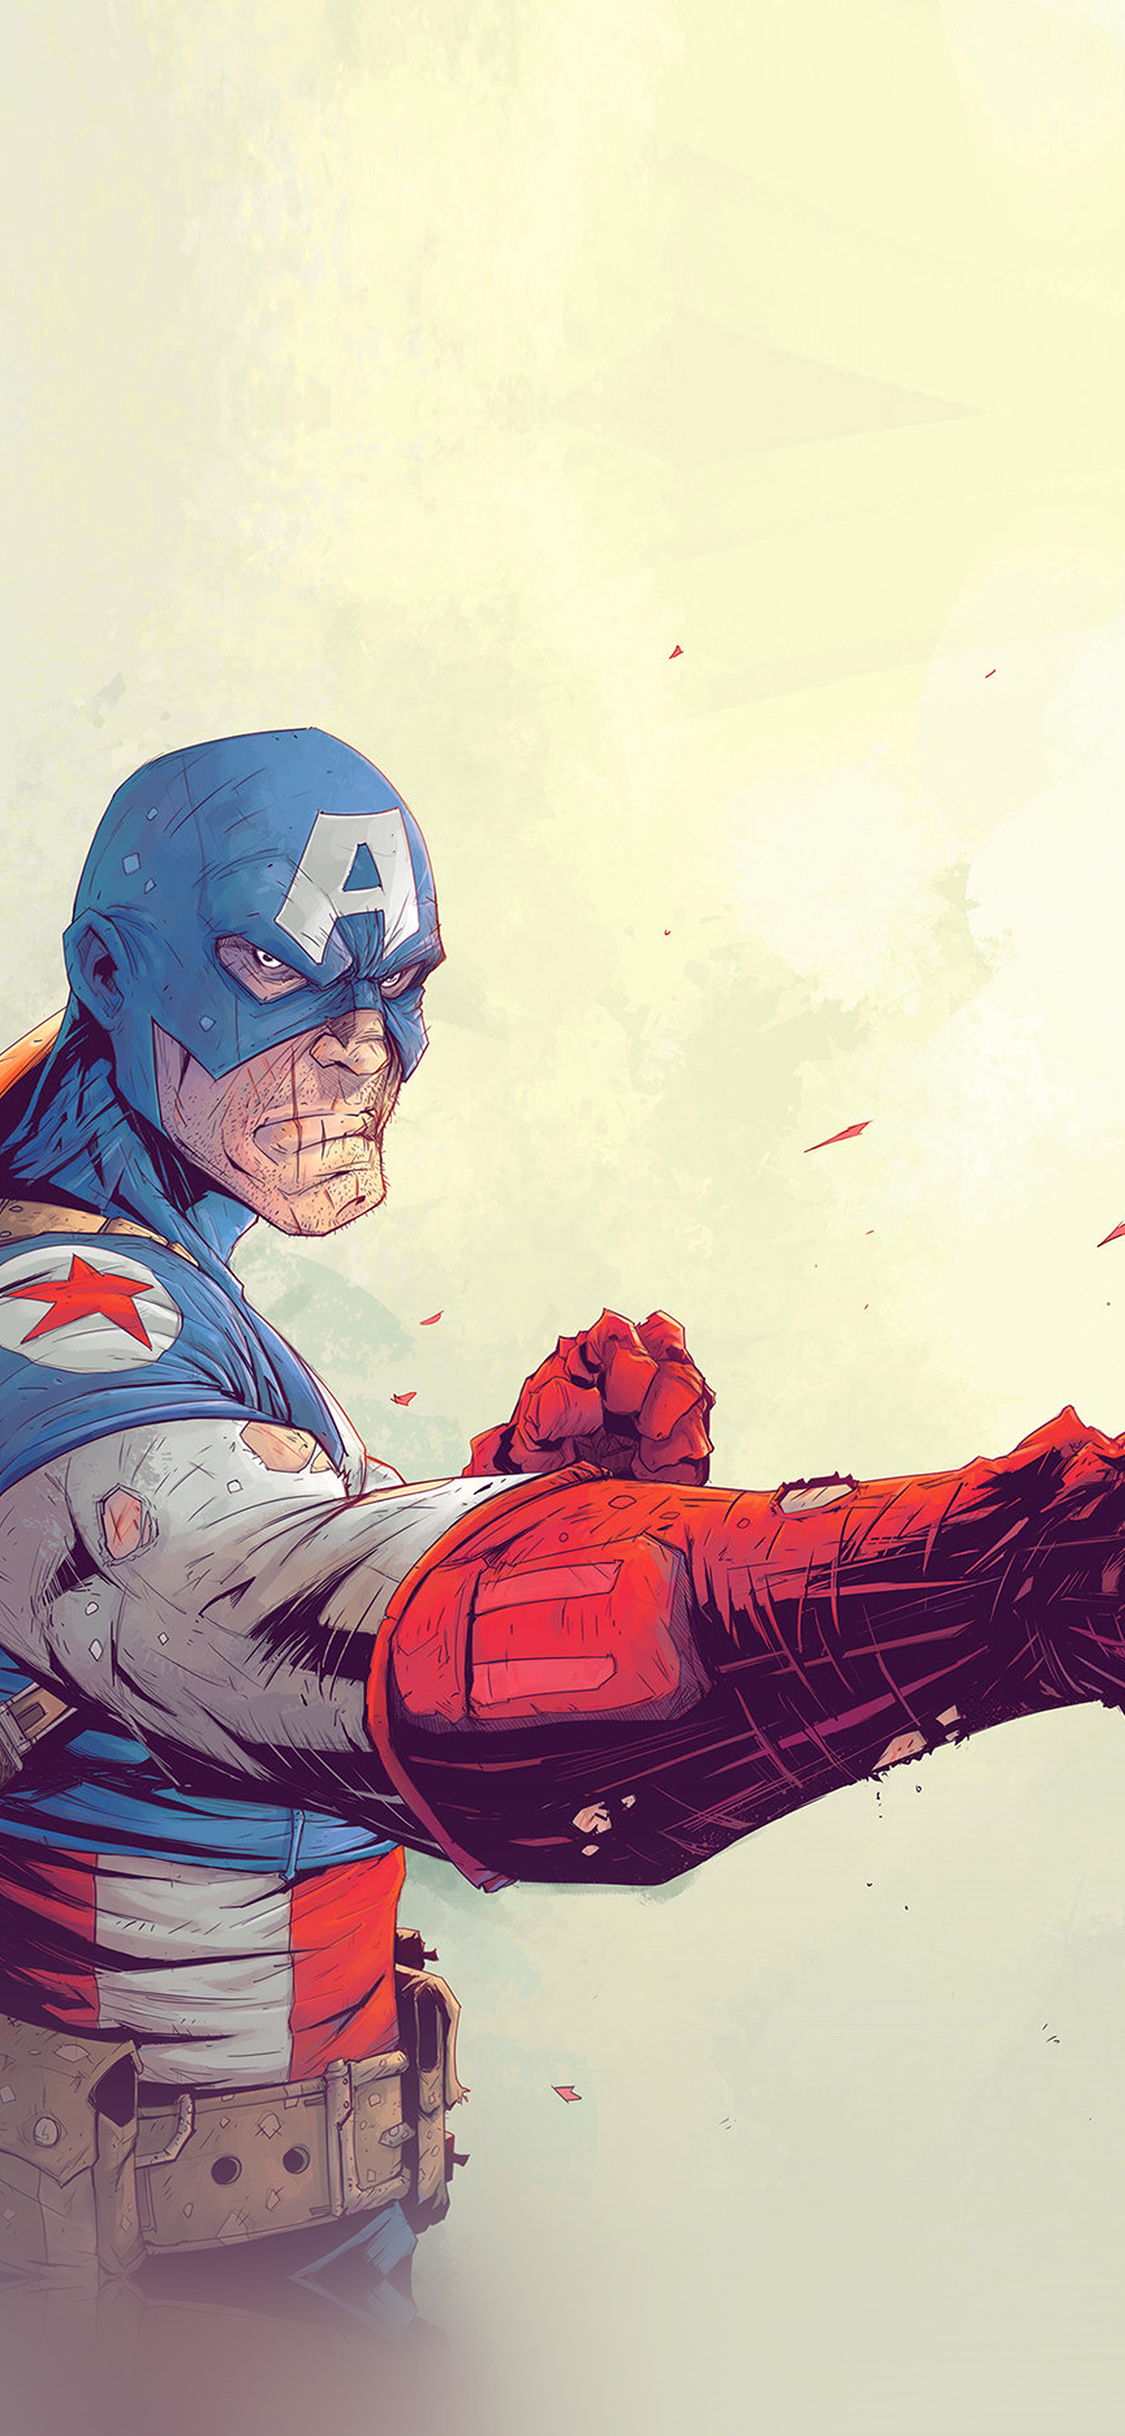 iPhoneXpapers.com-Apple-iPhone-wallpaper-av68-toronto-revolver-illustration-art-anime-hero-captain-america